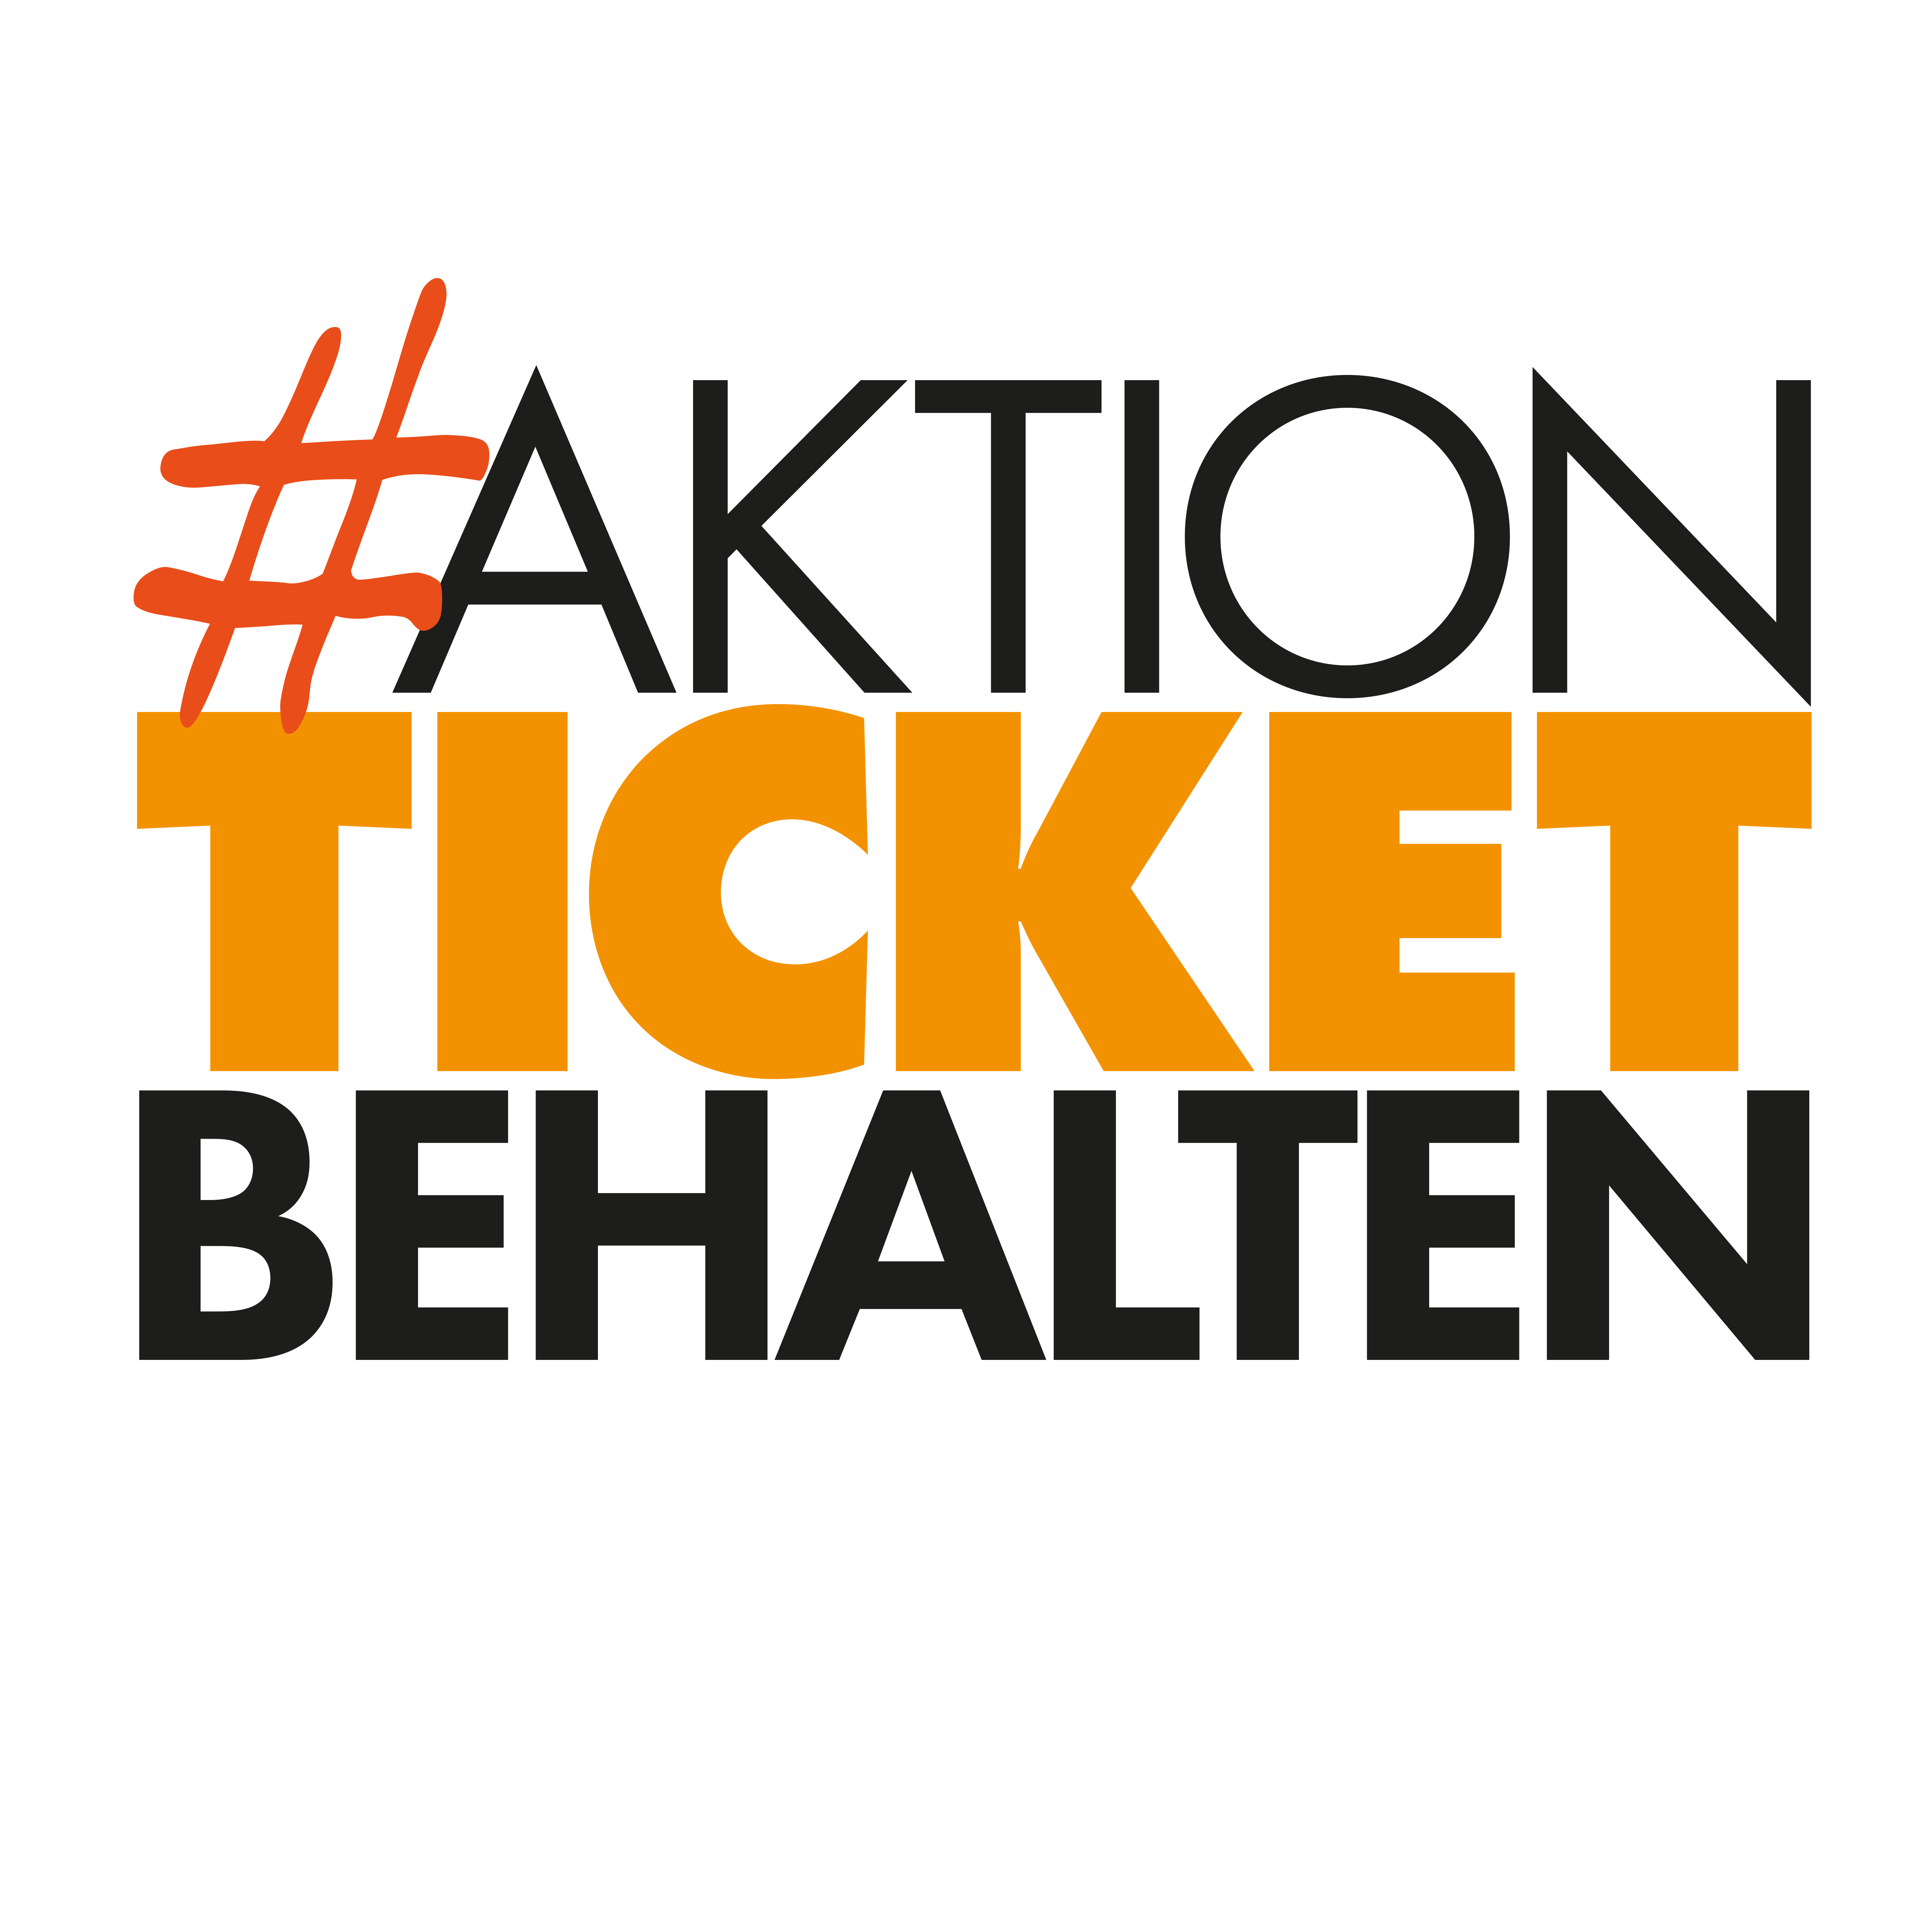 aktion ticket behalten2